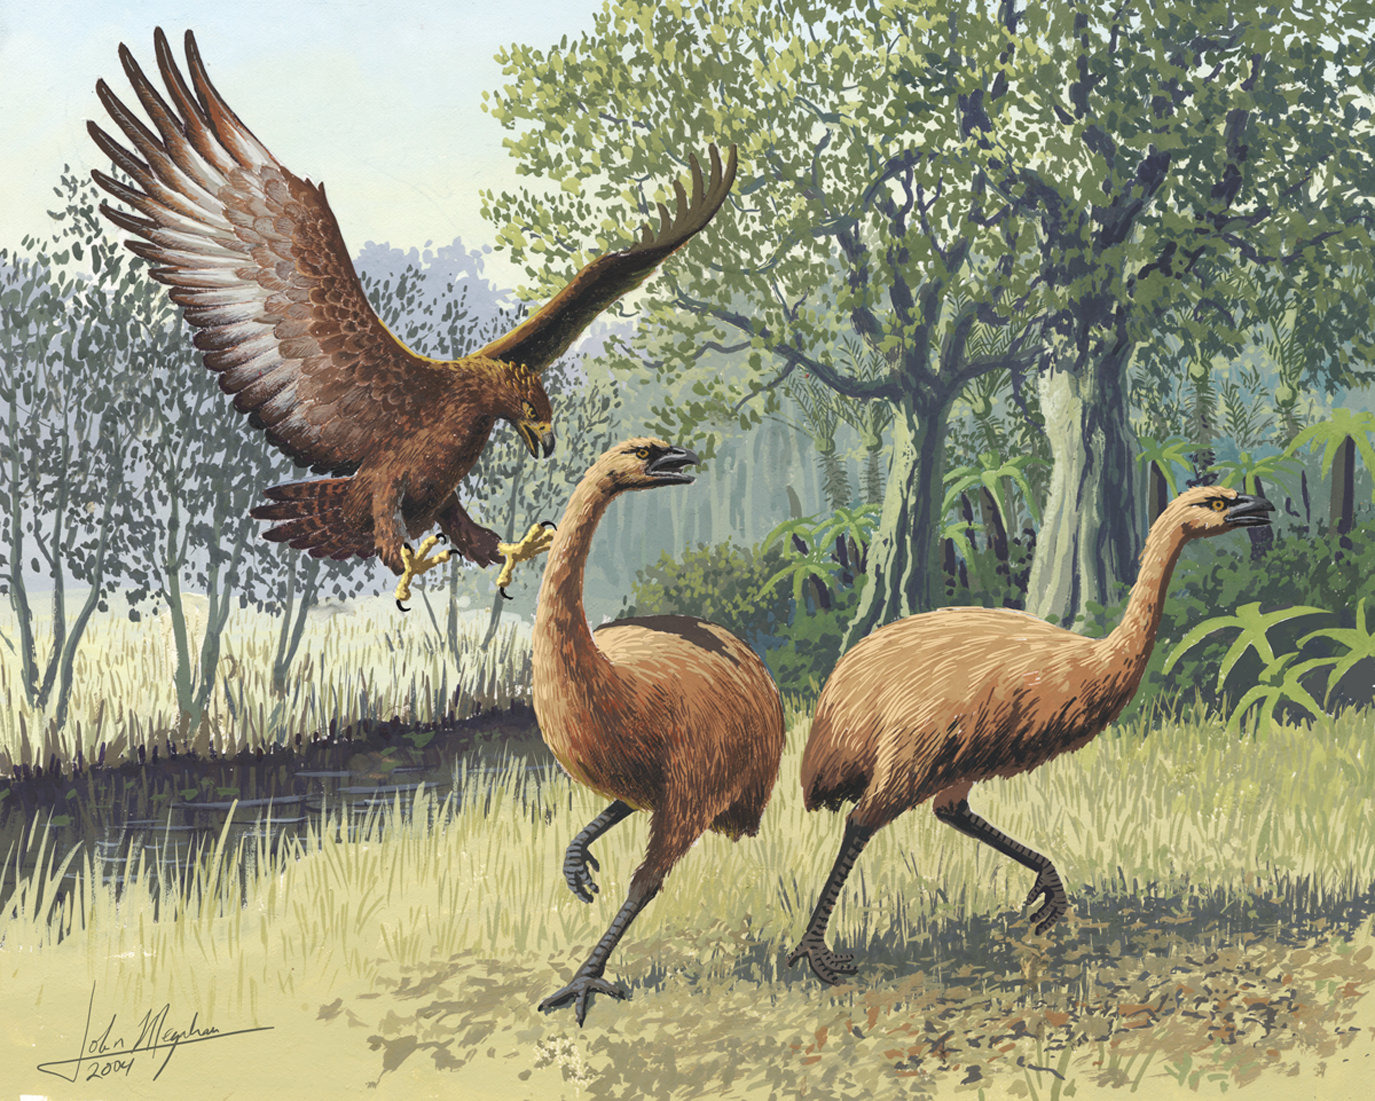 Featured image: Distinct diets of extinct moa